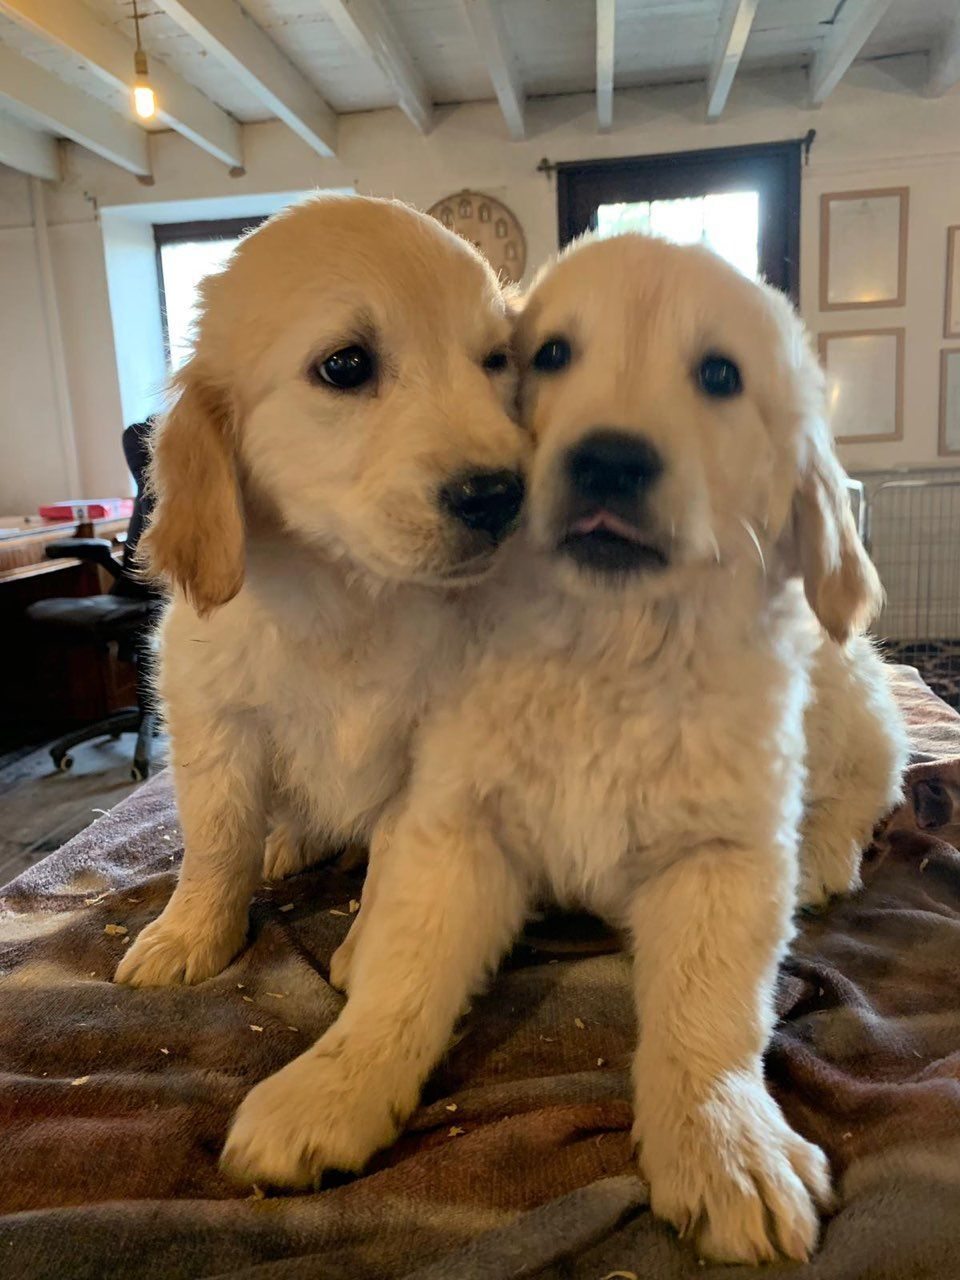 Stunning Golden Retriever Pups For Sale In Kuwait Puppies For Sale